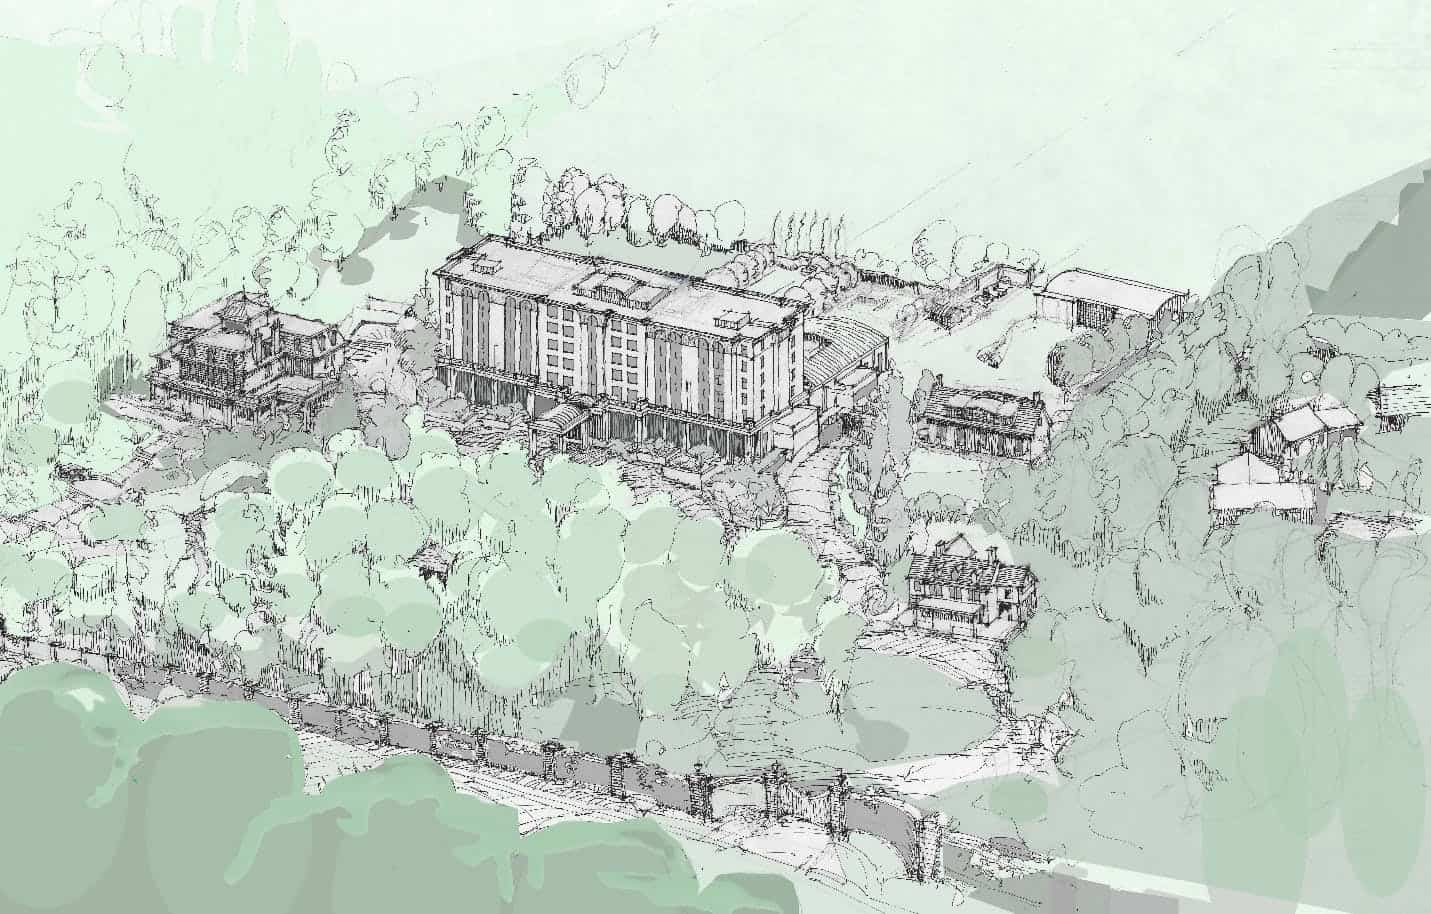 Artist rendering of Two Sisters Resort proposed to be imposed on Randwood Estate in Niagara-on-the-Lake, Ontario.